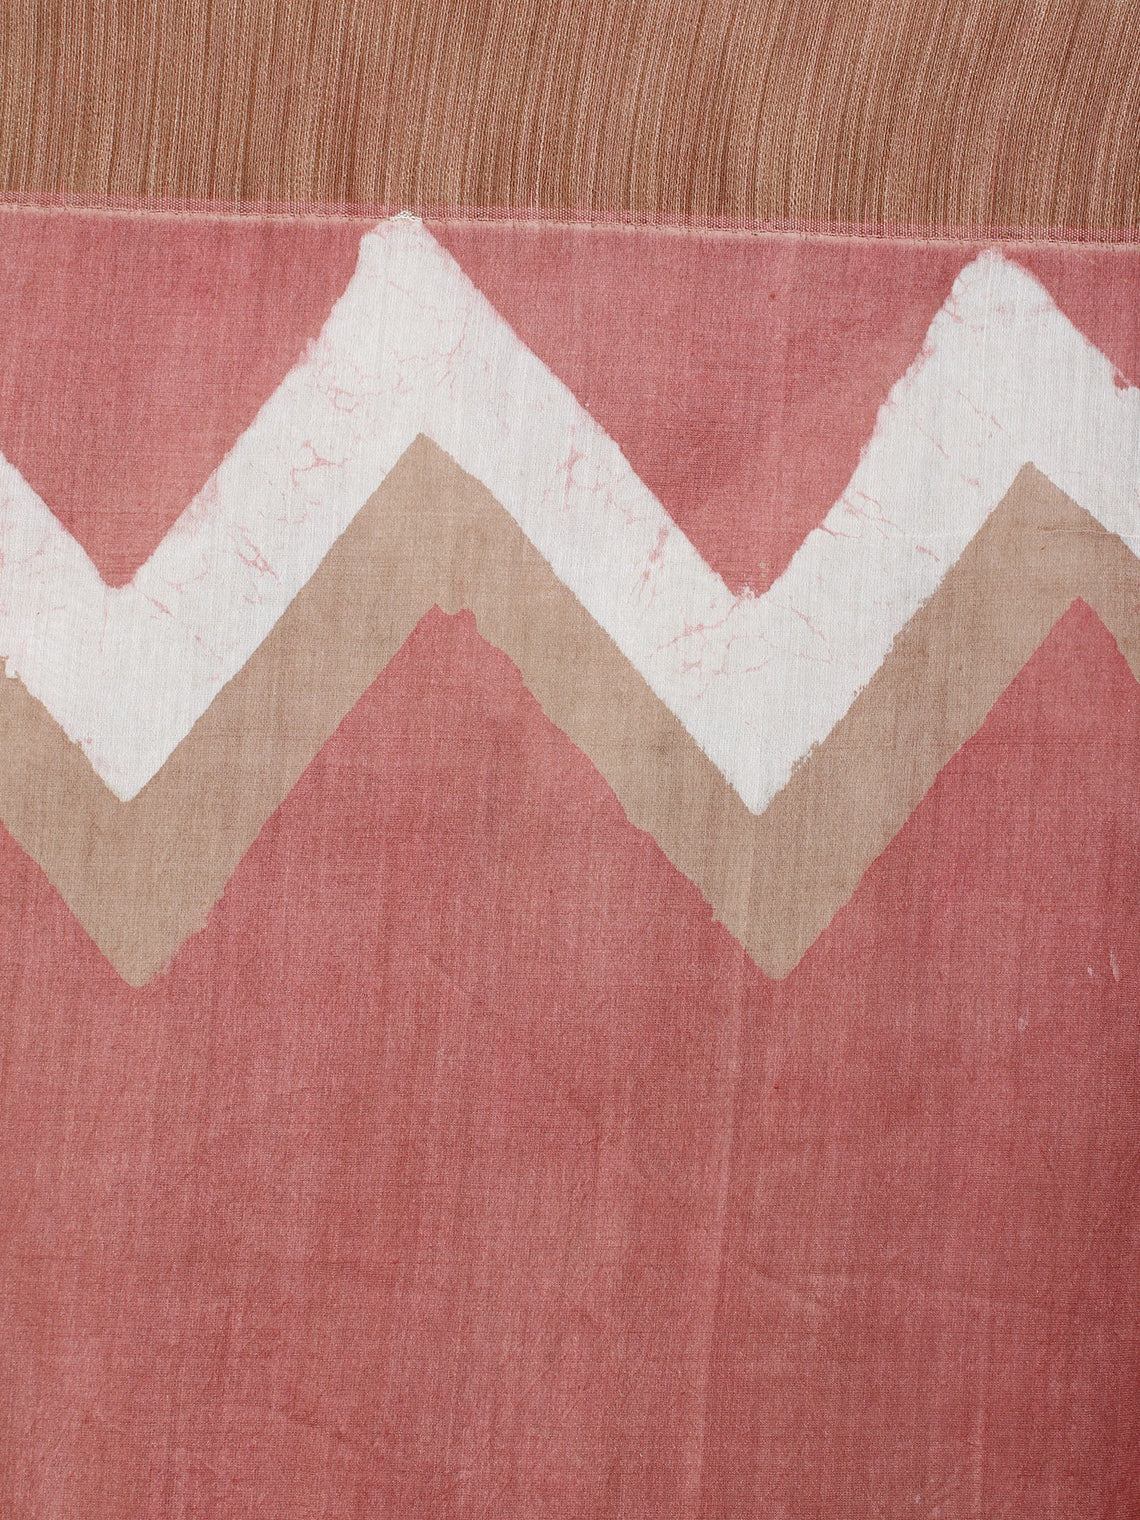 Pastel Peach Beige White Hand Block Printed in Natural Vegetable Colors Chanderi Saree With Geecha Border - S03170515